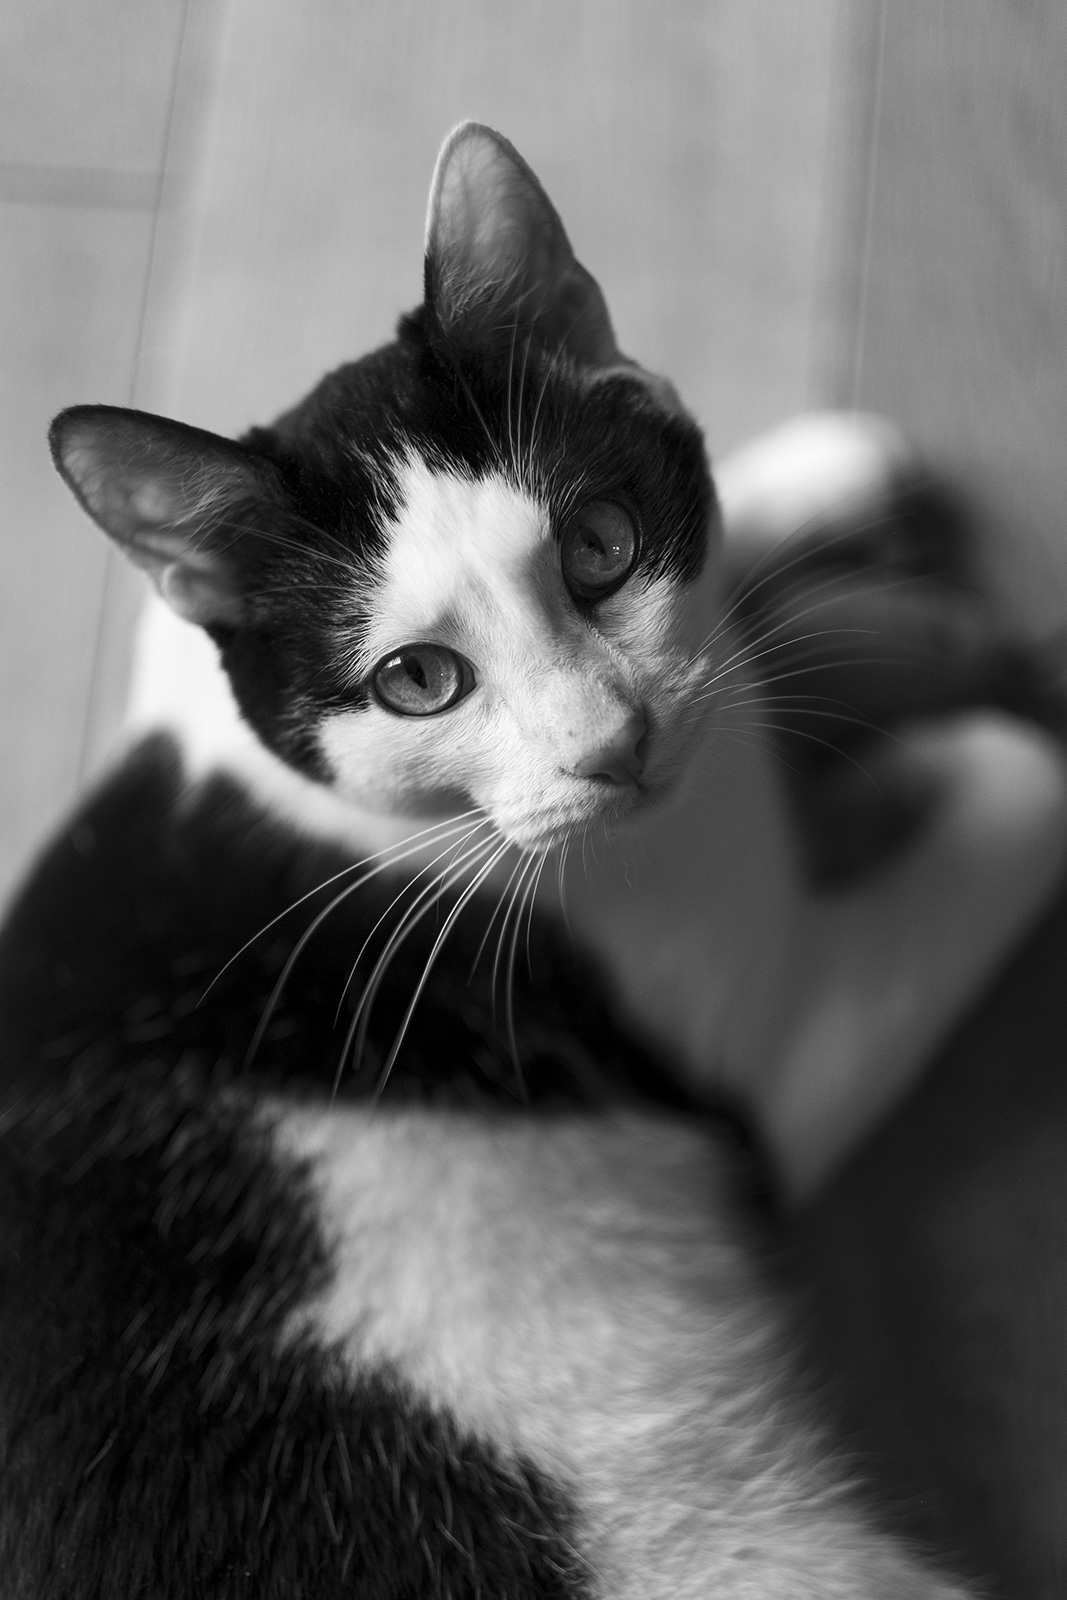 Black and white cat looking up at viewer black and white portrait photograph P. Maton 2019 eyeteeth.net